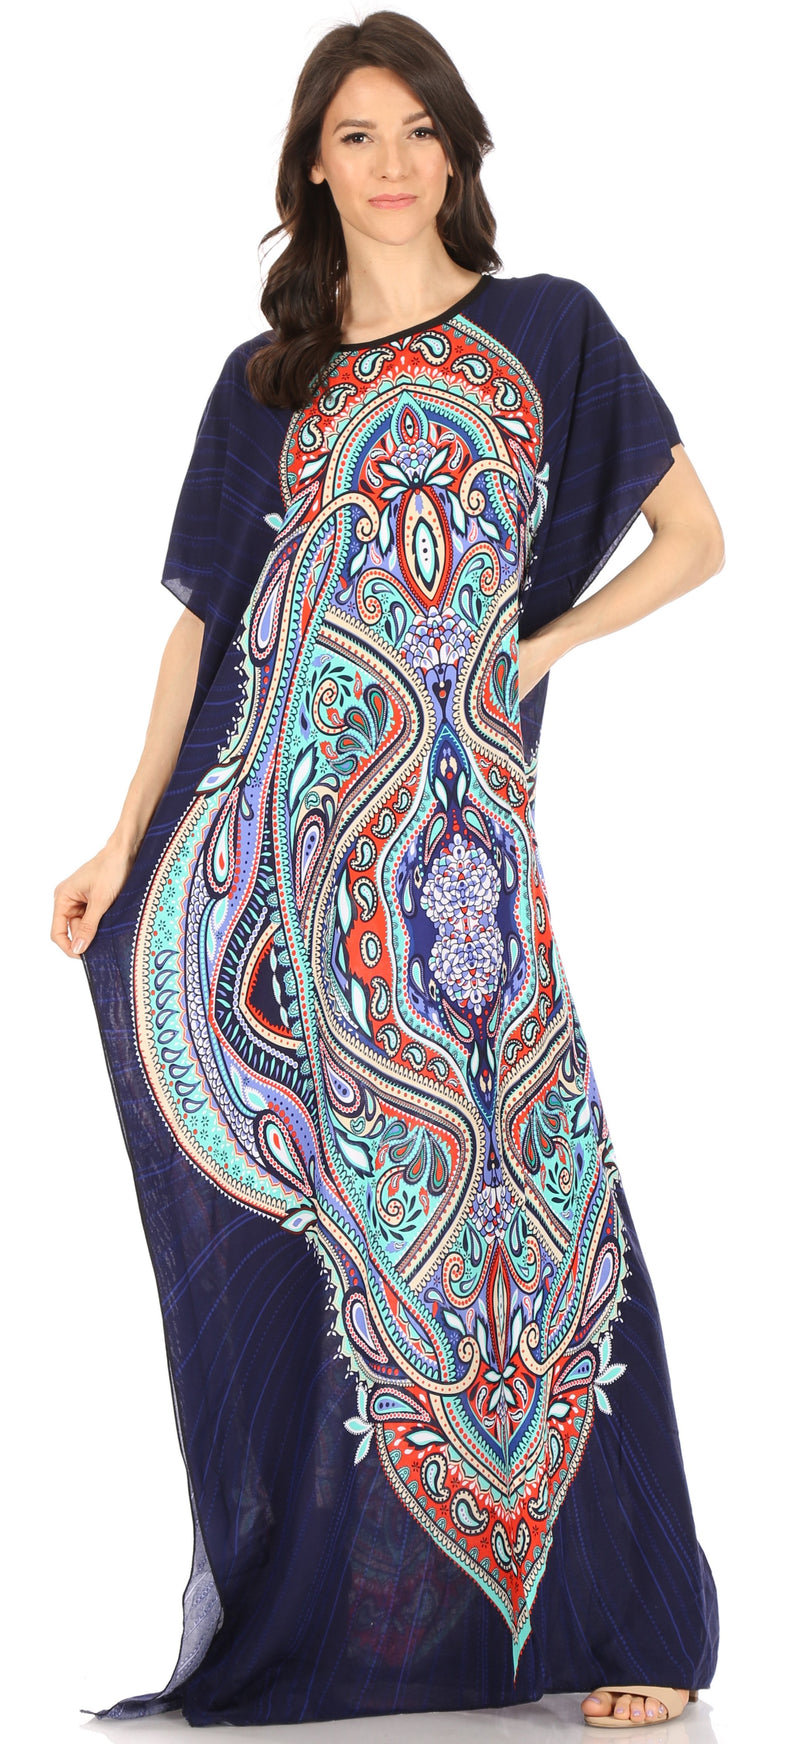 Sakkas Aggy Womens Dashiki African Print Caftan Dress Maxi Boho Hippie Colorful